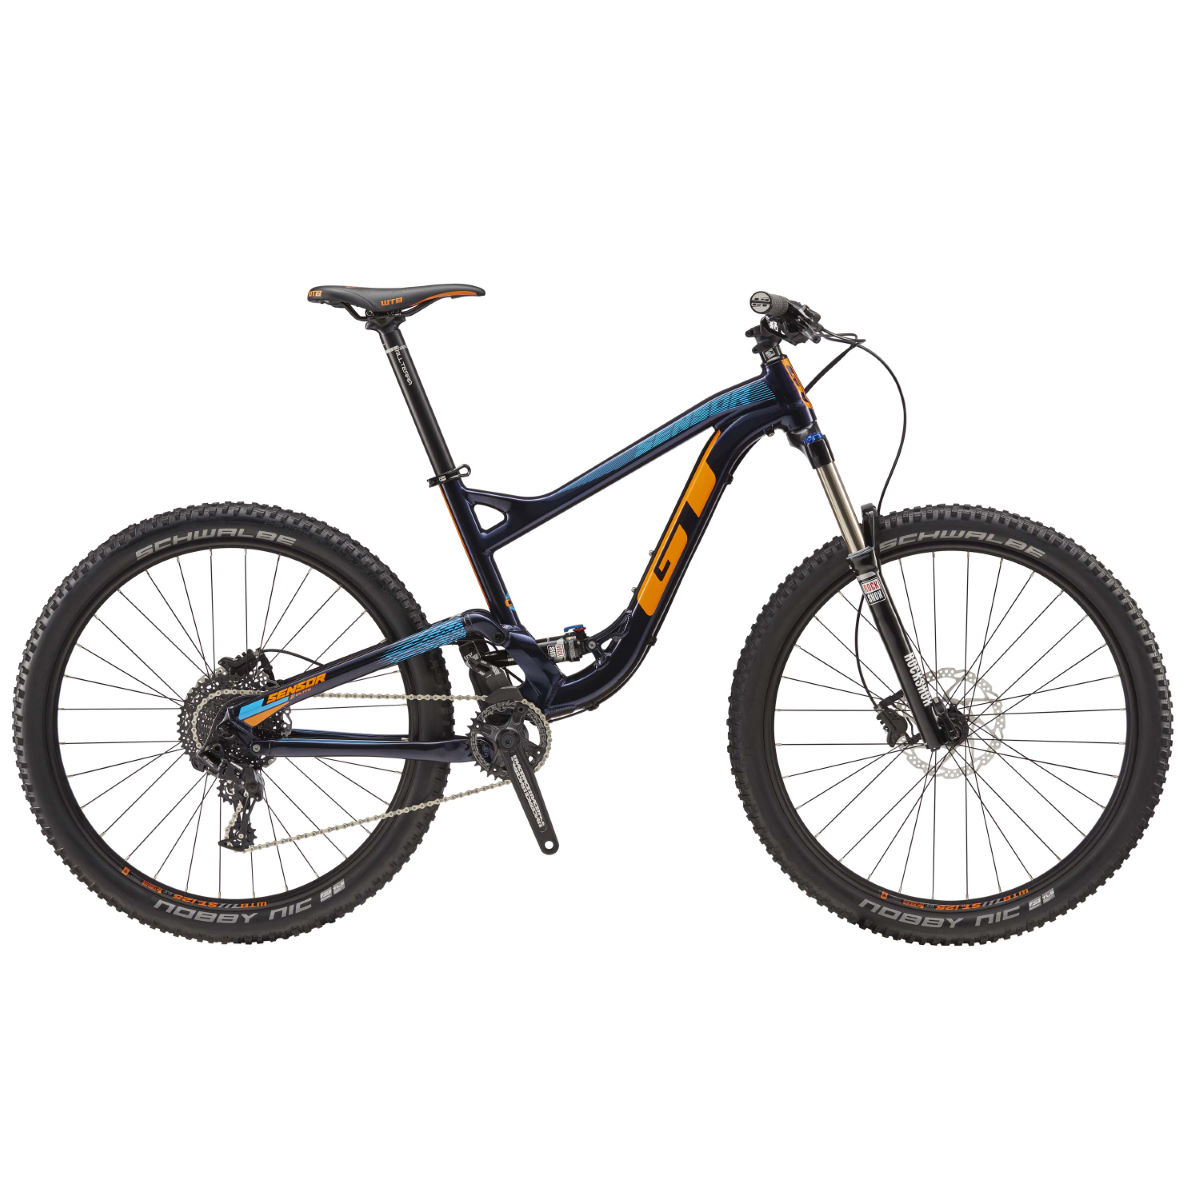 VTT GT Sensor AL Elite (2017) - XL Blue/Orange VTT tout suspendu